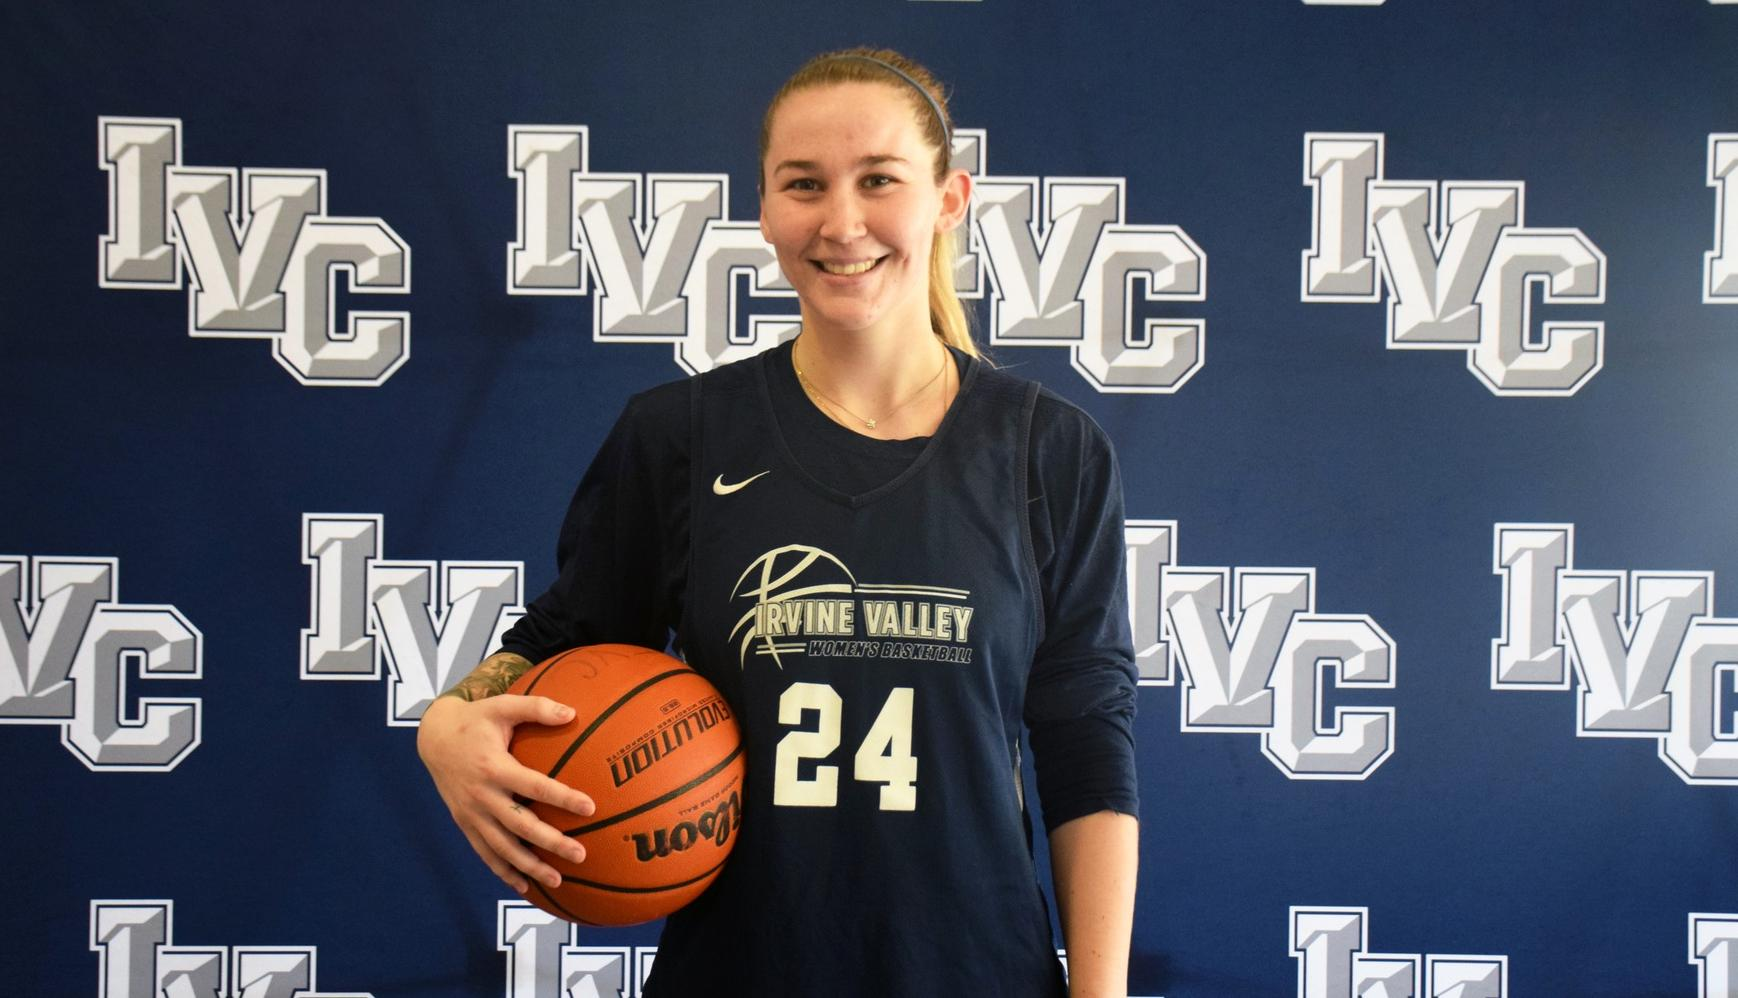 Basketball player Lexi Vail selected as one of best in the state